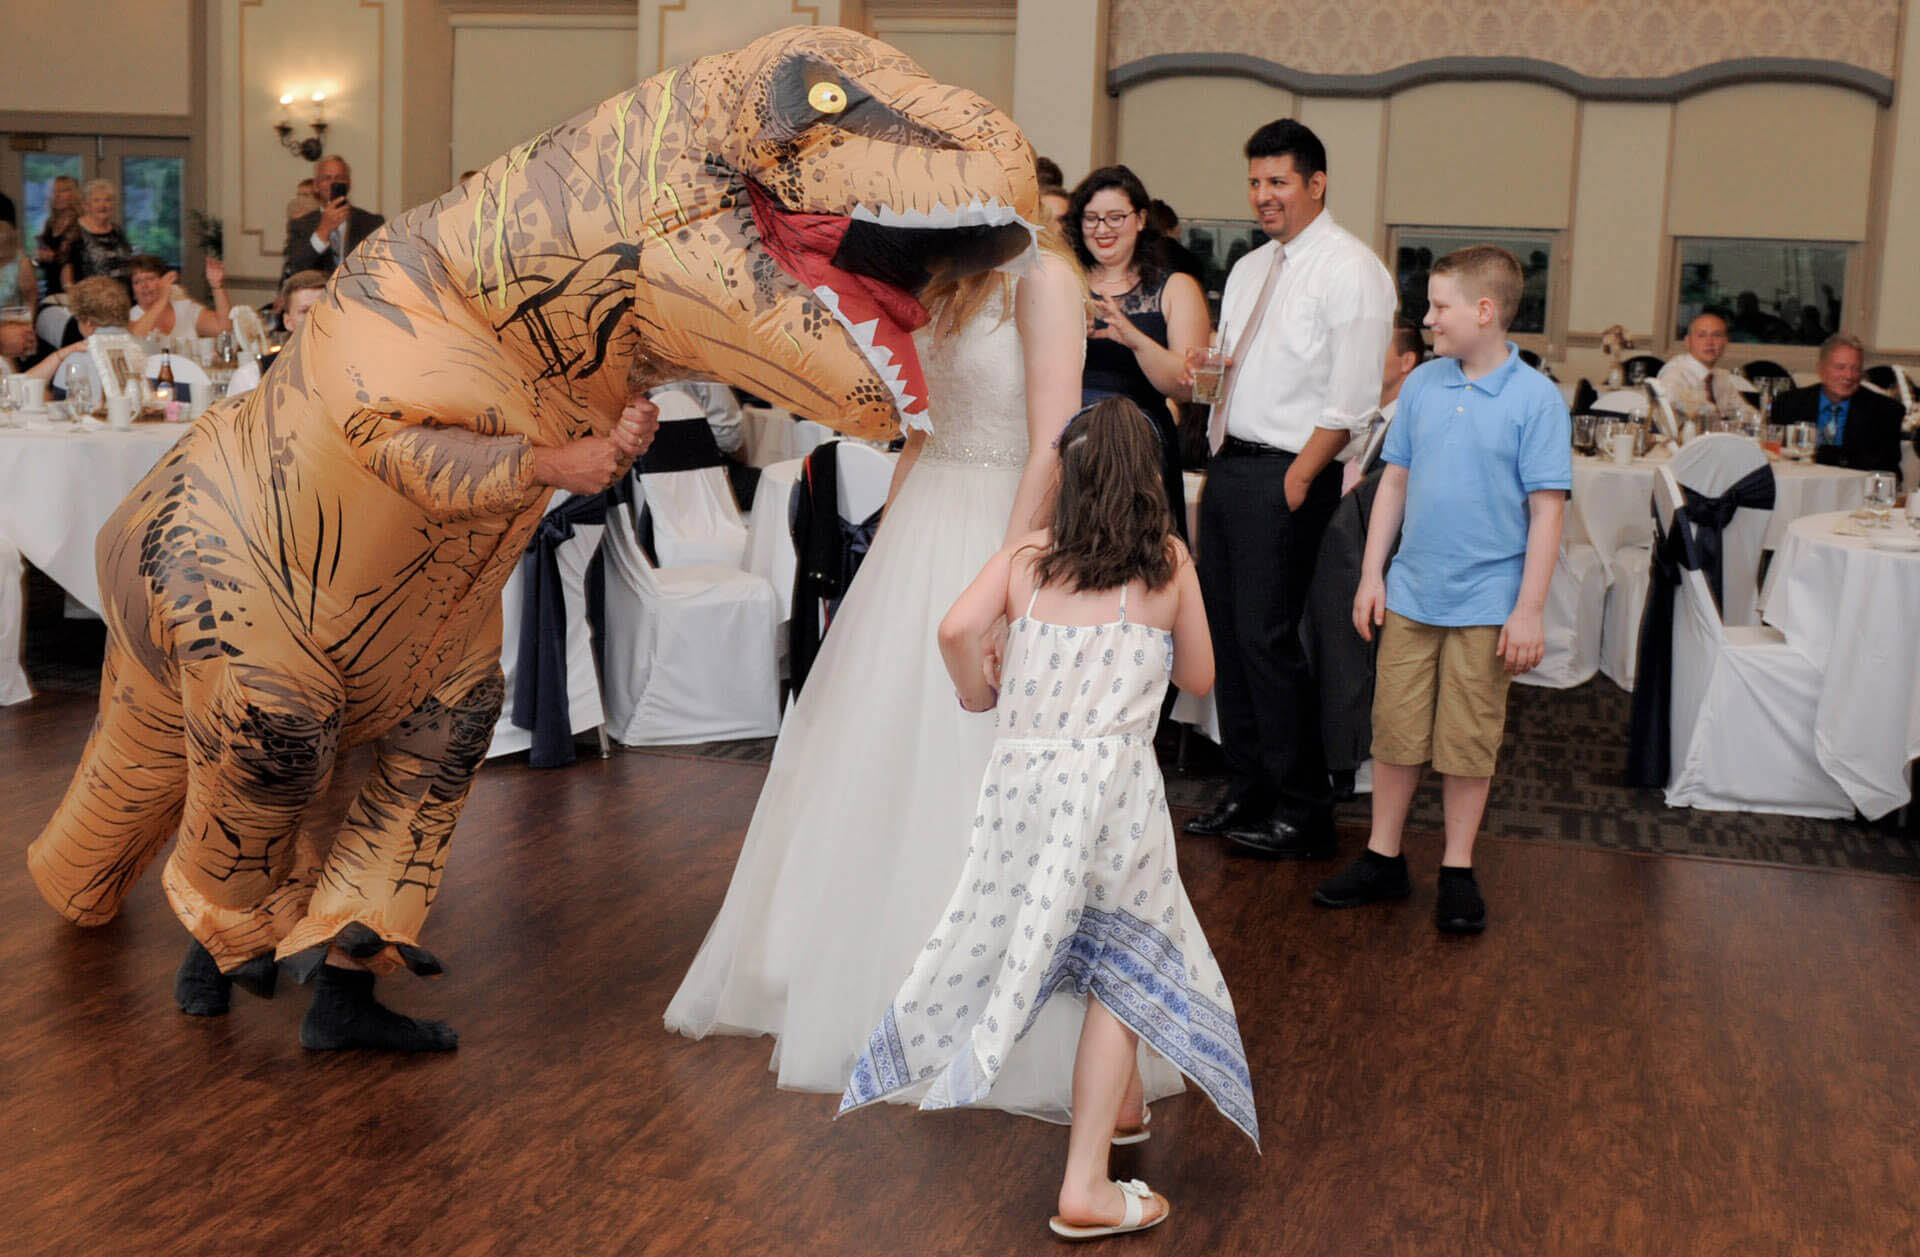 A fun, goofy photo of a bride that seems to be having her head chewed during her Polo Fields, Ann Arbor Michigan wedding is purely an optical illusion during the dancing portion of the wedding reception.